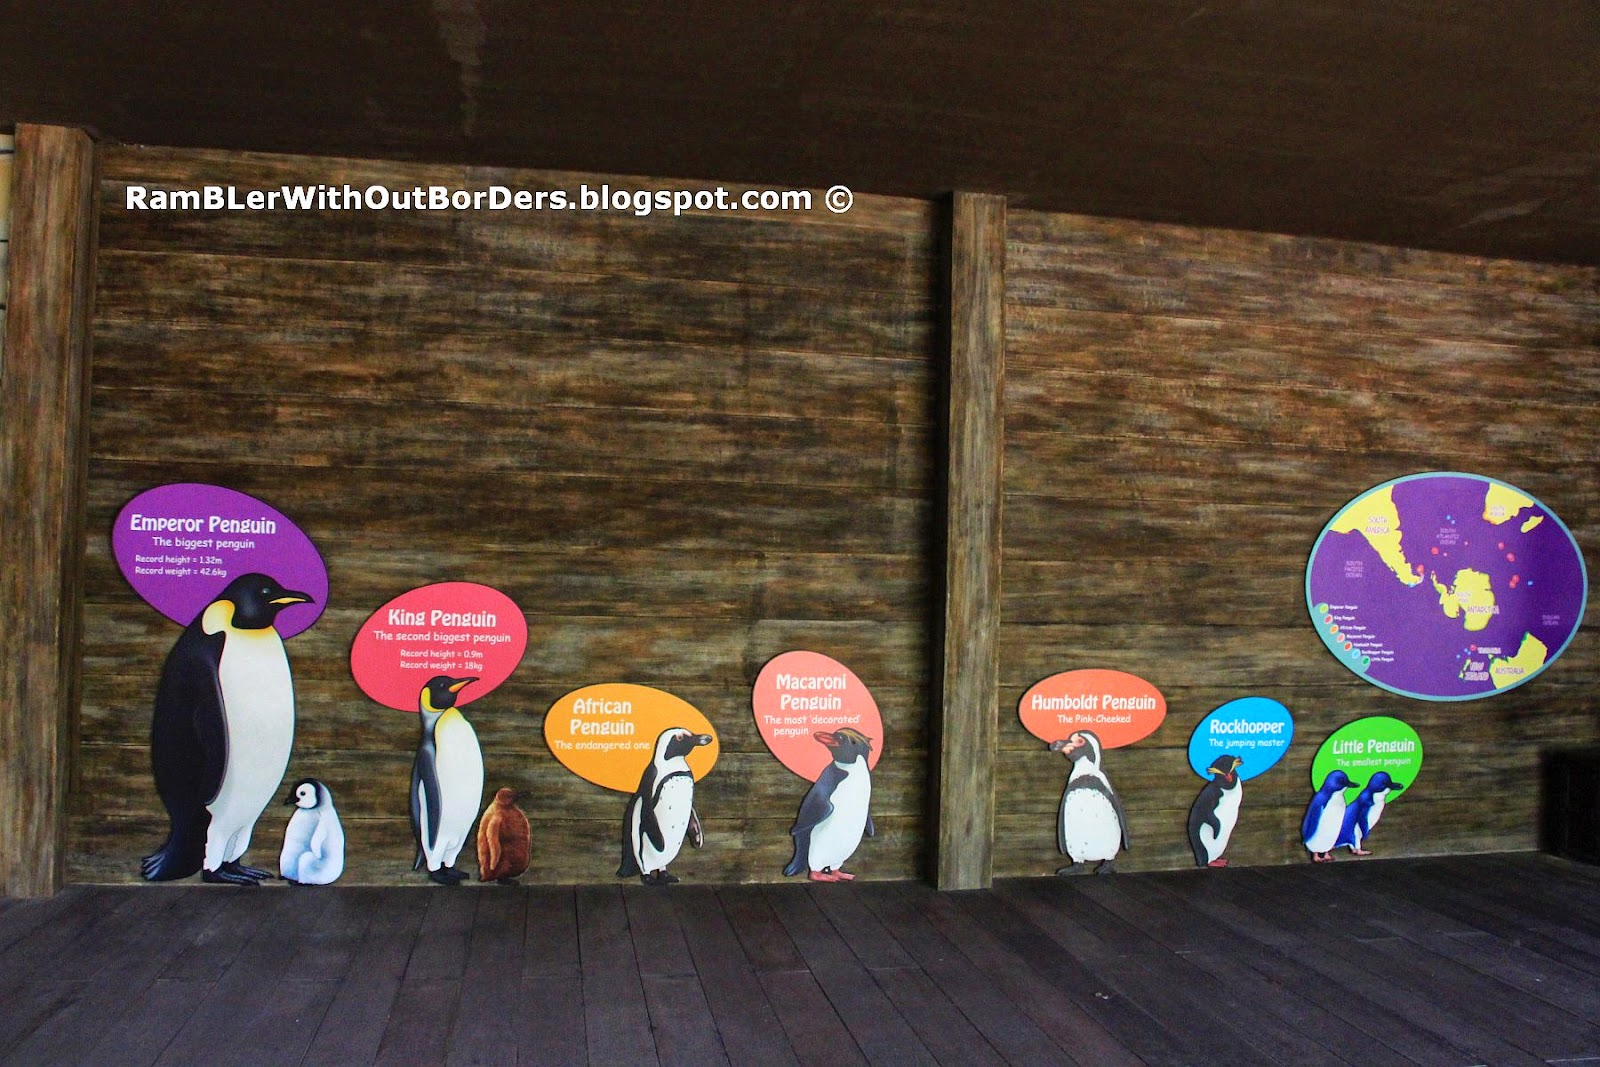 Penguin Coast ExhibitHumbodt Penguins, Jurong Bird Park, Singapore